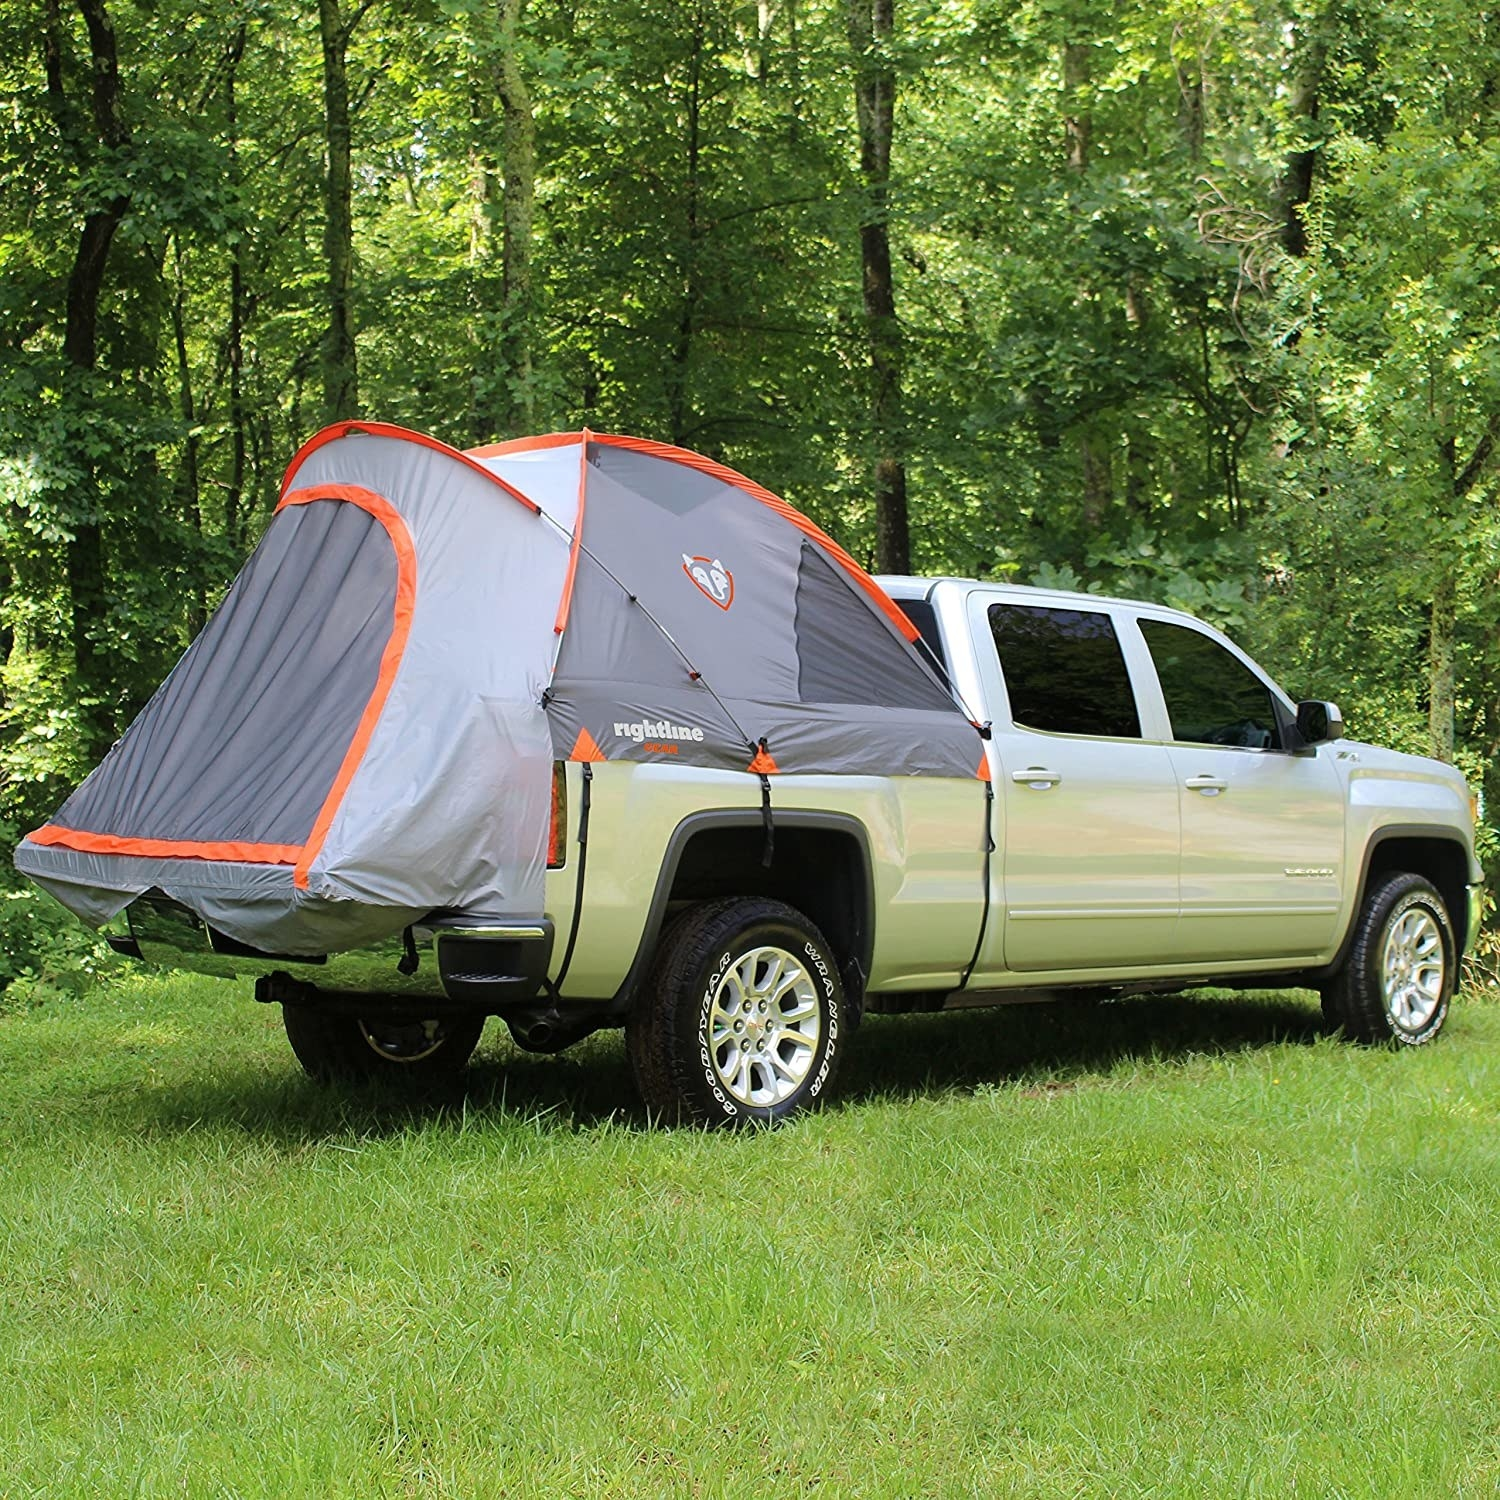 A truck with a tent covering the opened bed